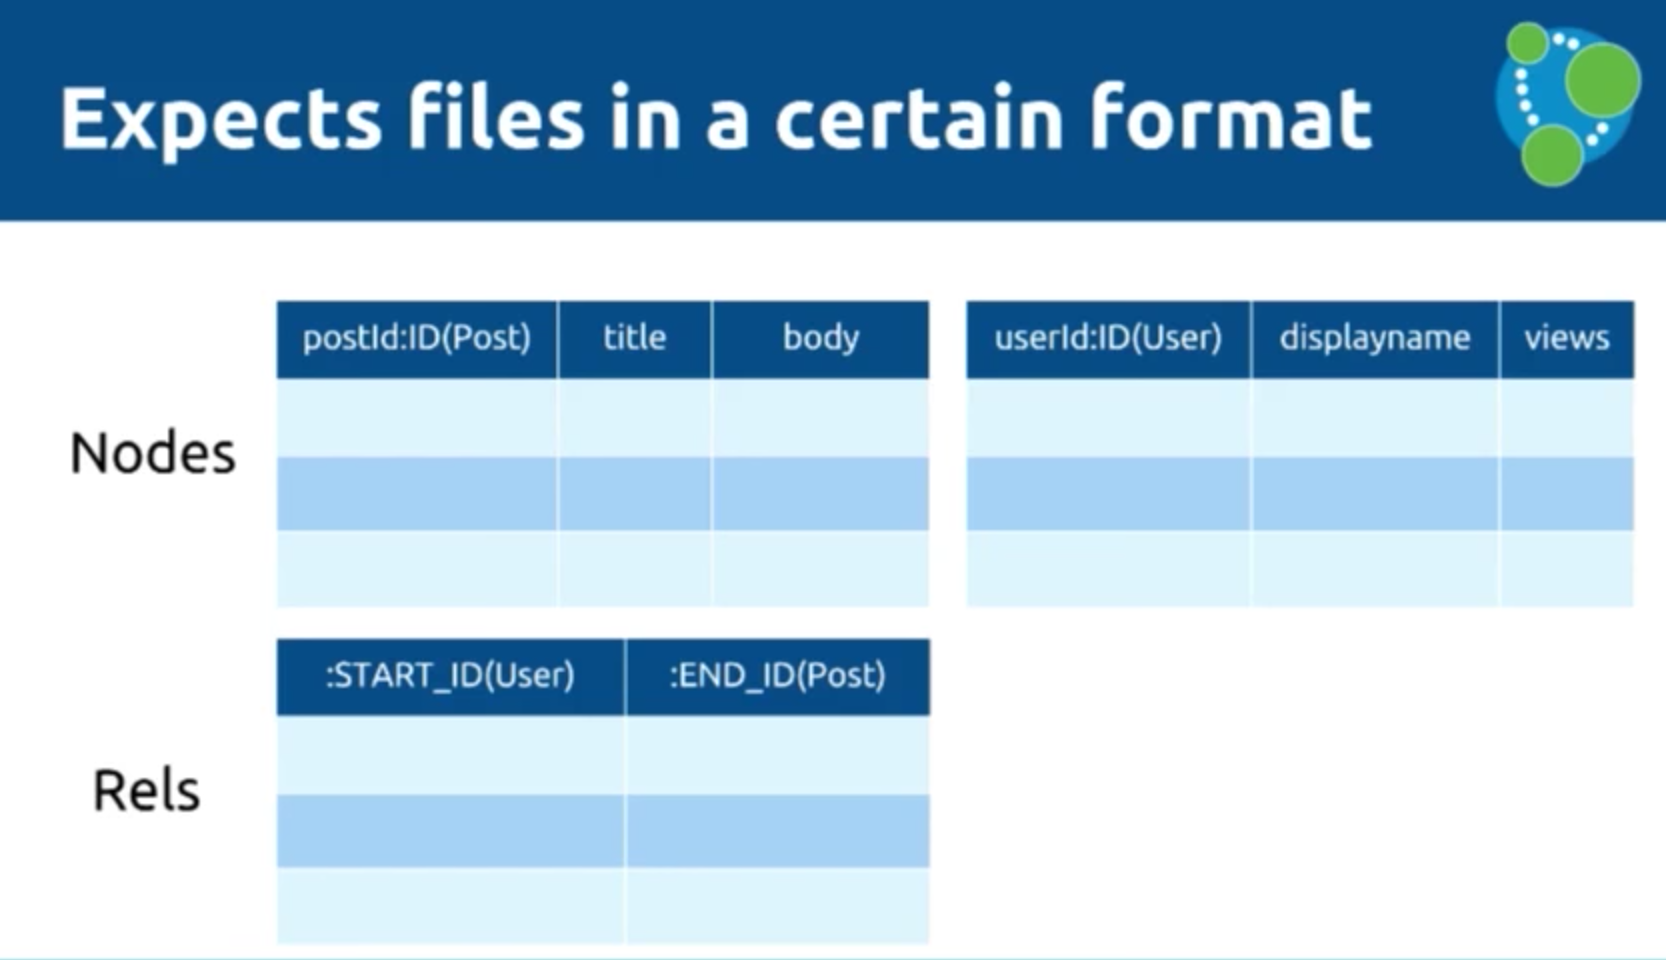 The expected data import file format